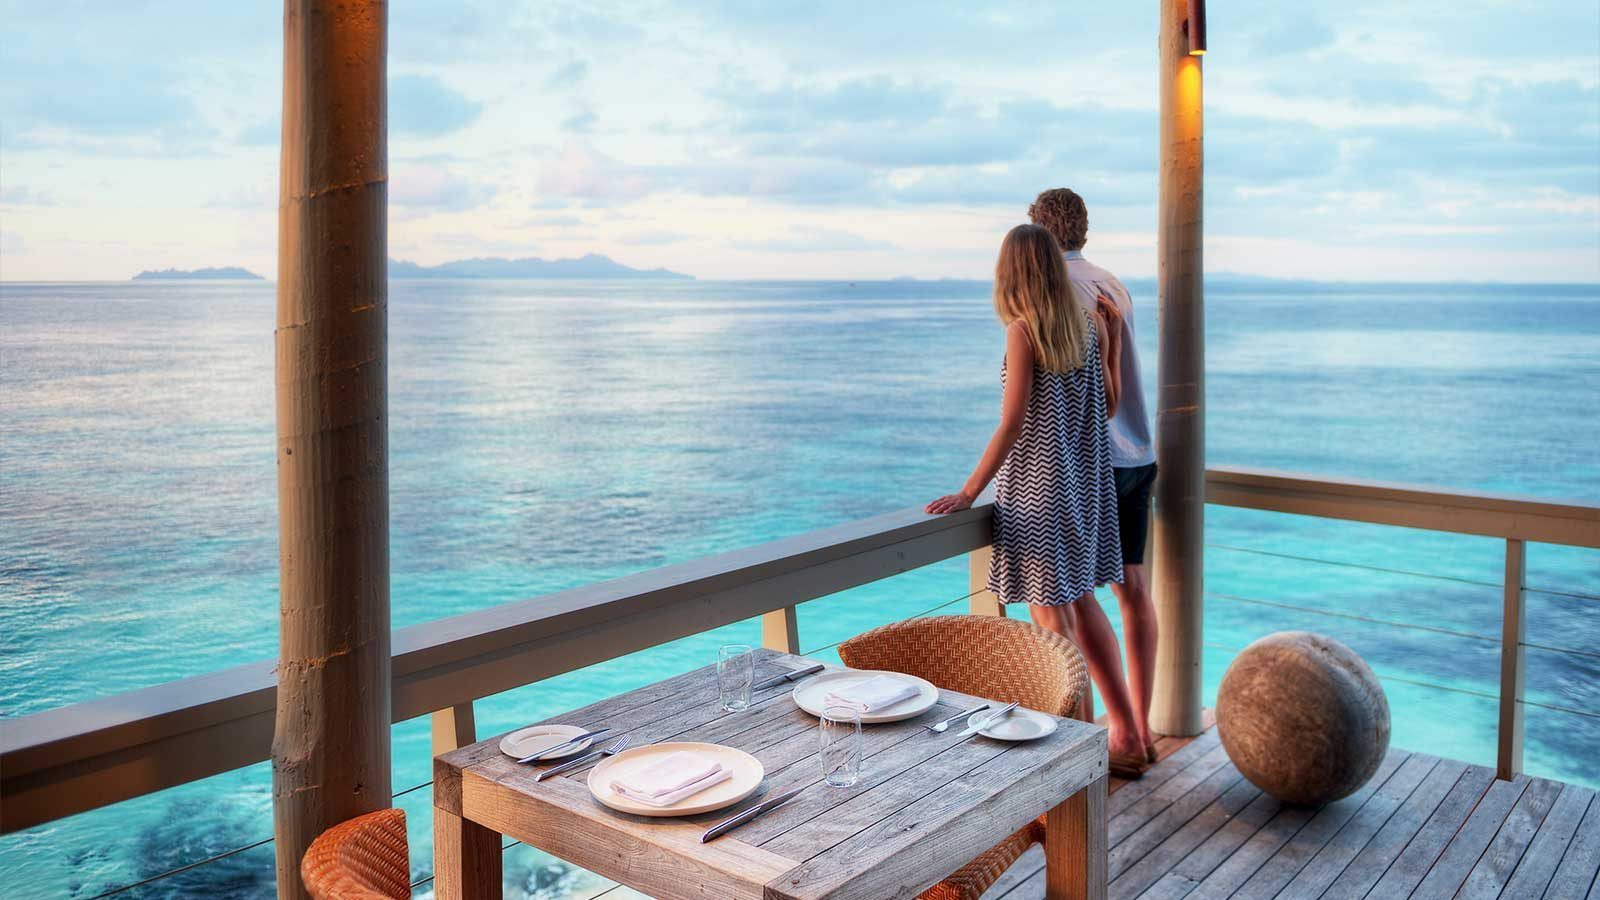 Vomo-Island-Resort-Couple-overlooking-Rocks-Bar-View-1600x900